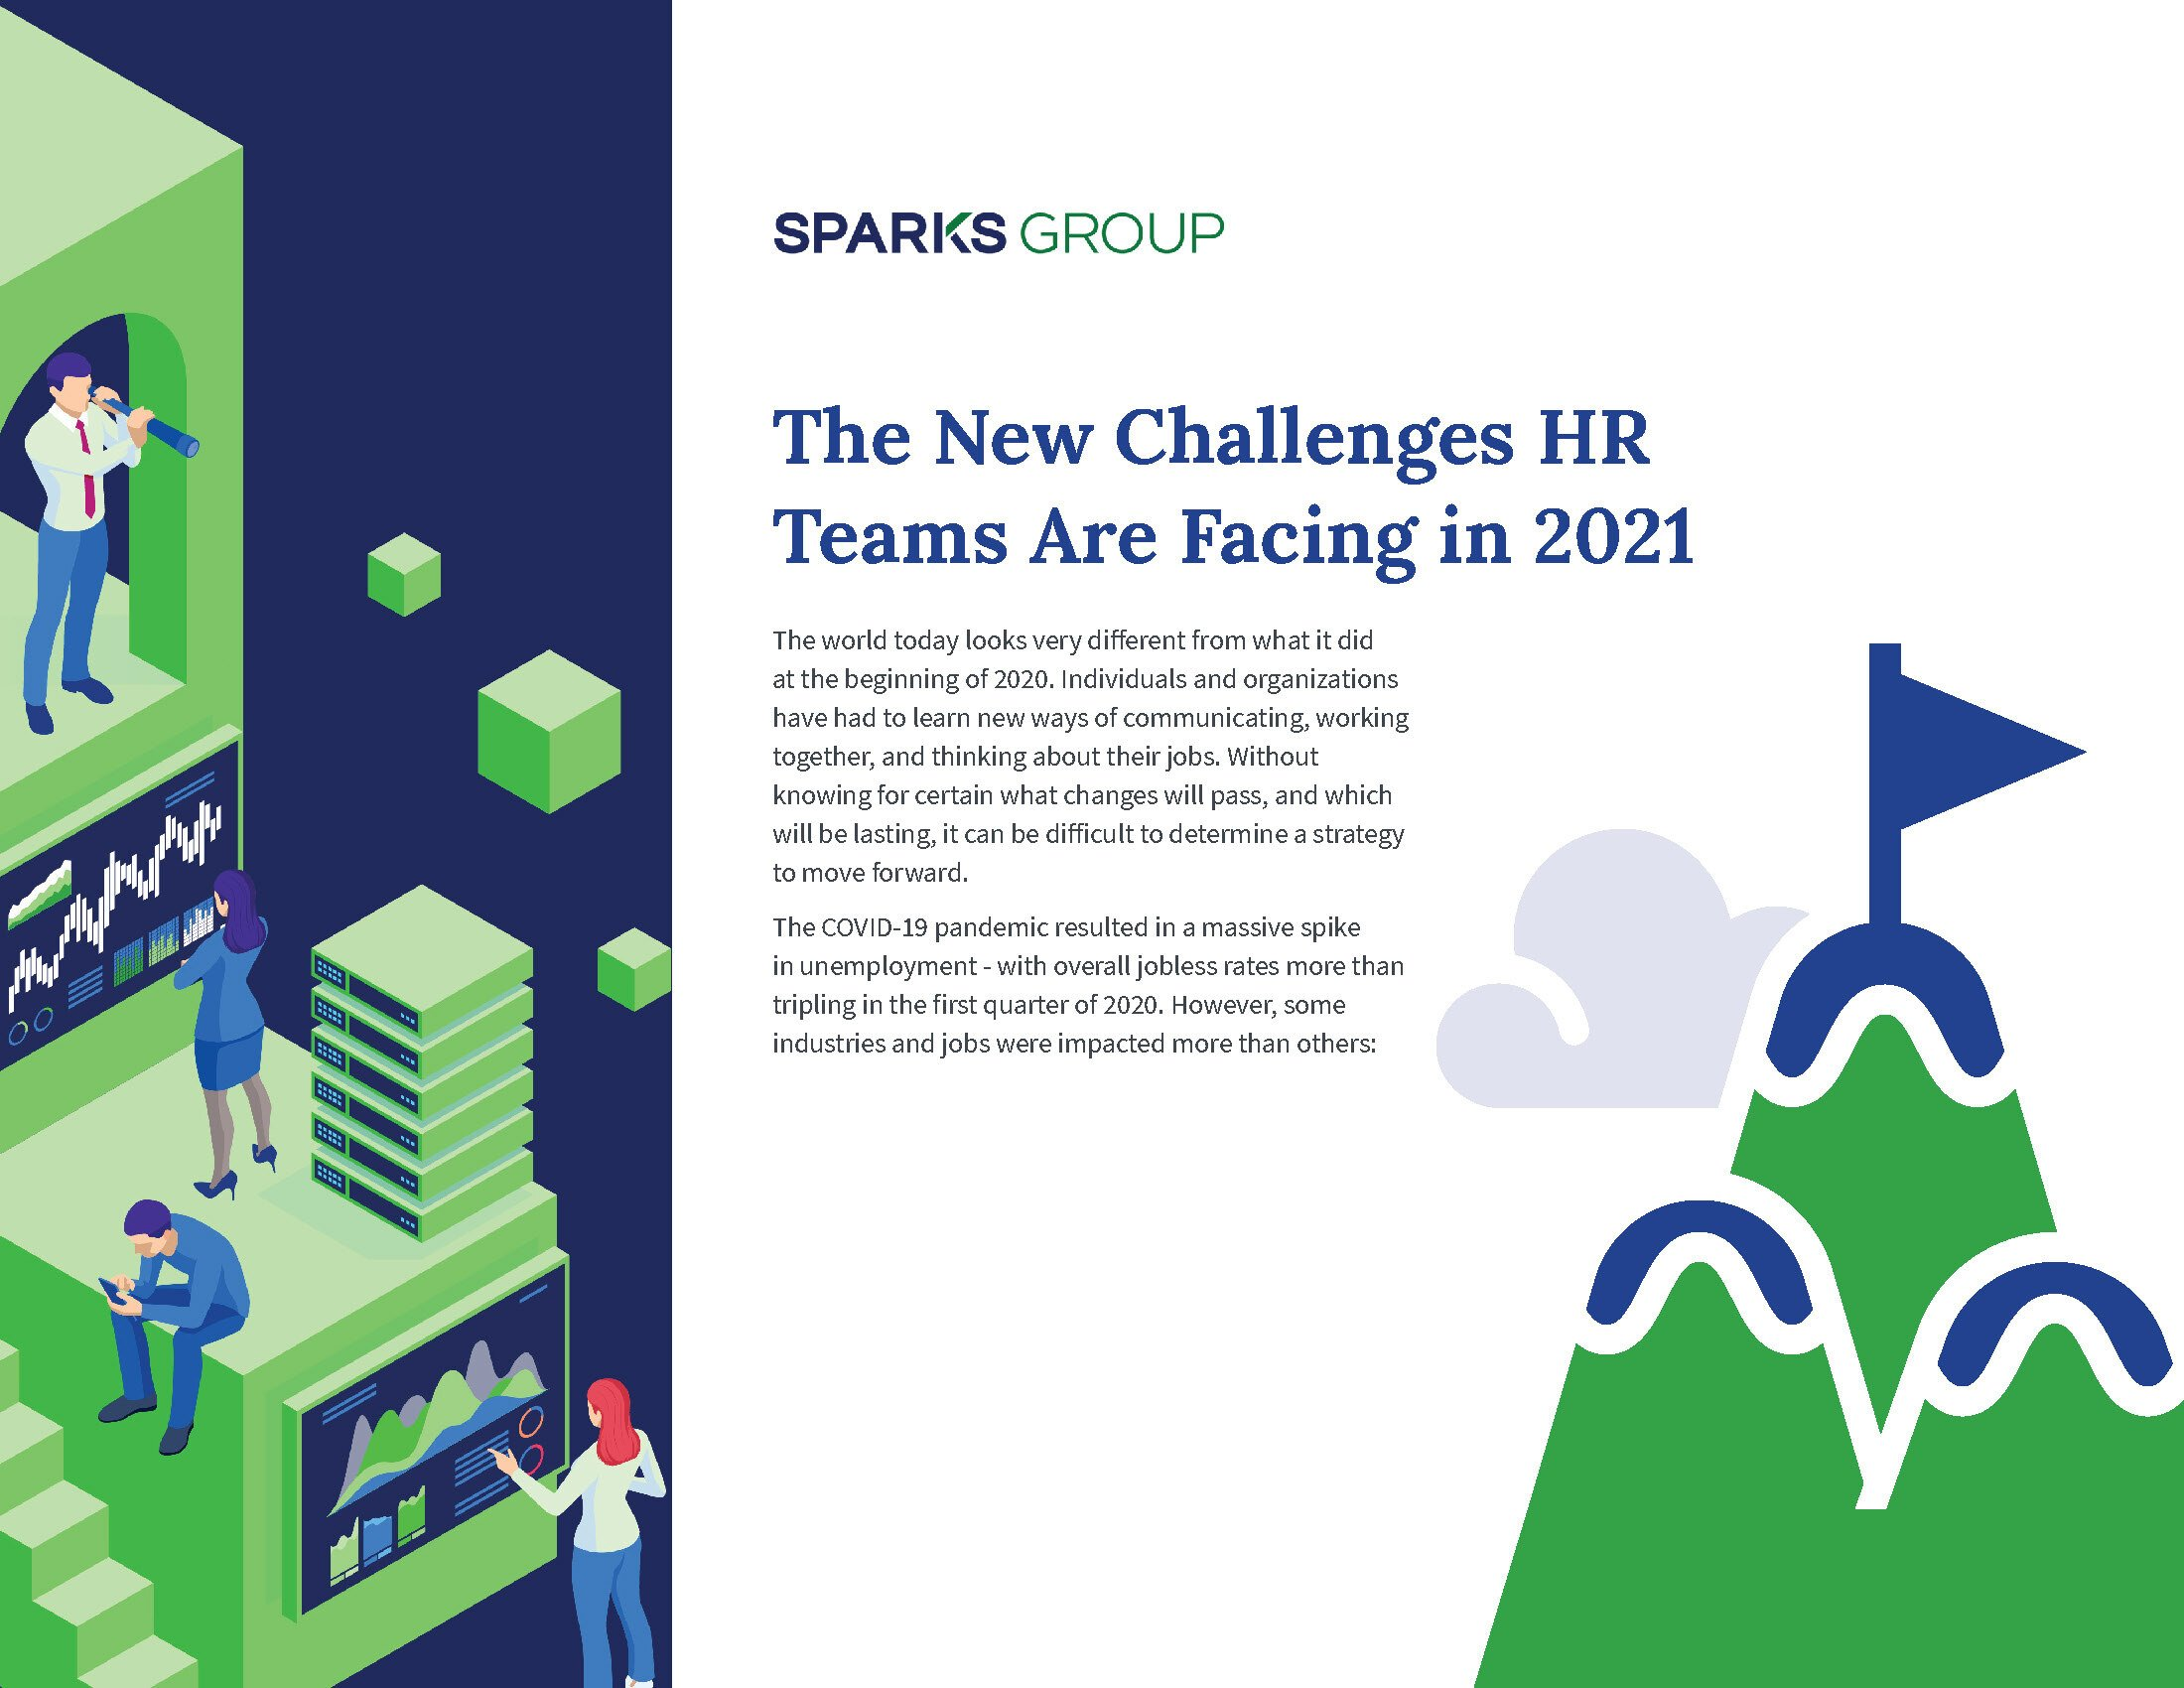 Top Recruiting Challenges HR Teams are Facing in 2021